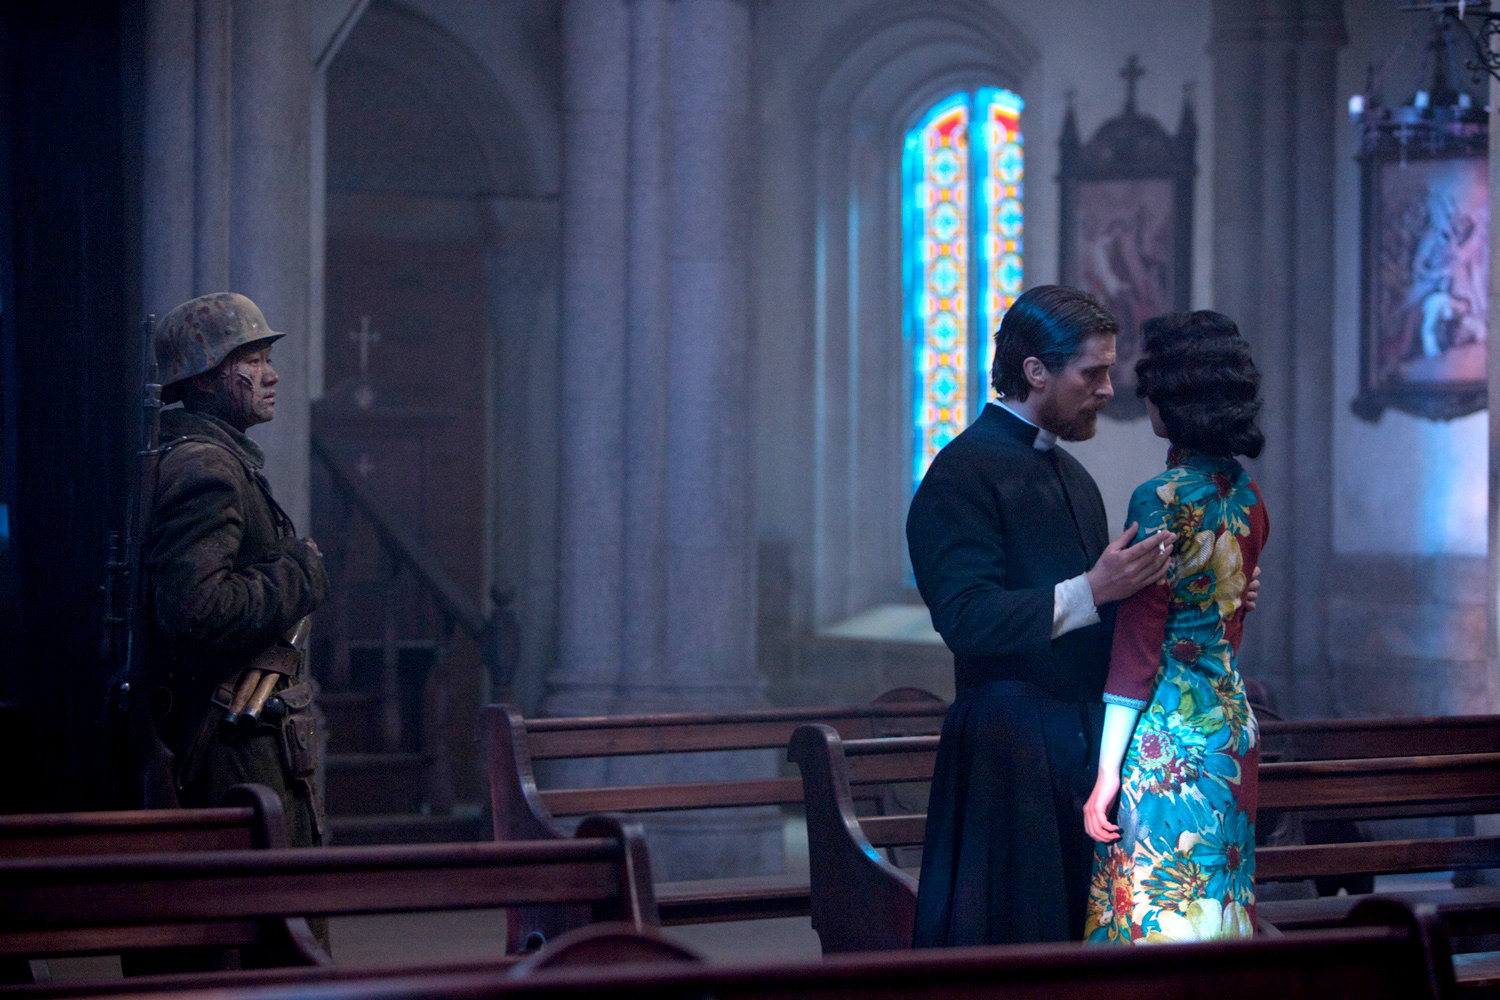 Beautiful New Still From The Flowers War Christian Bale